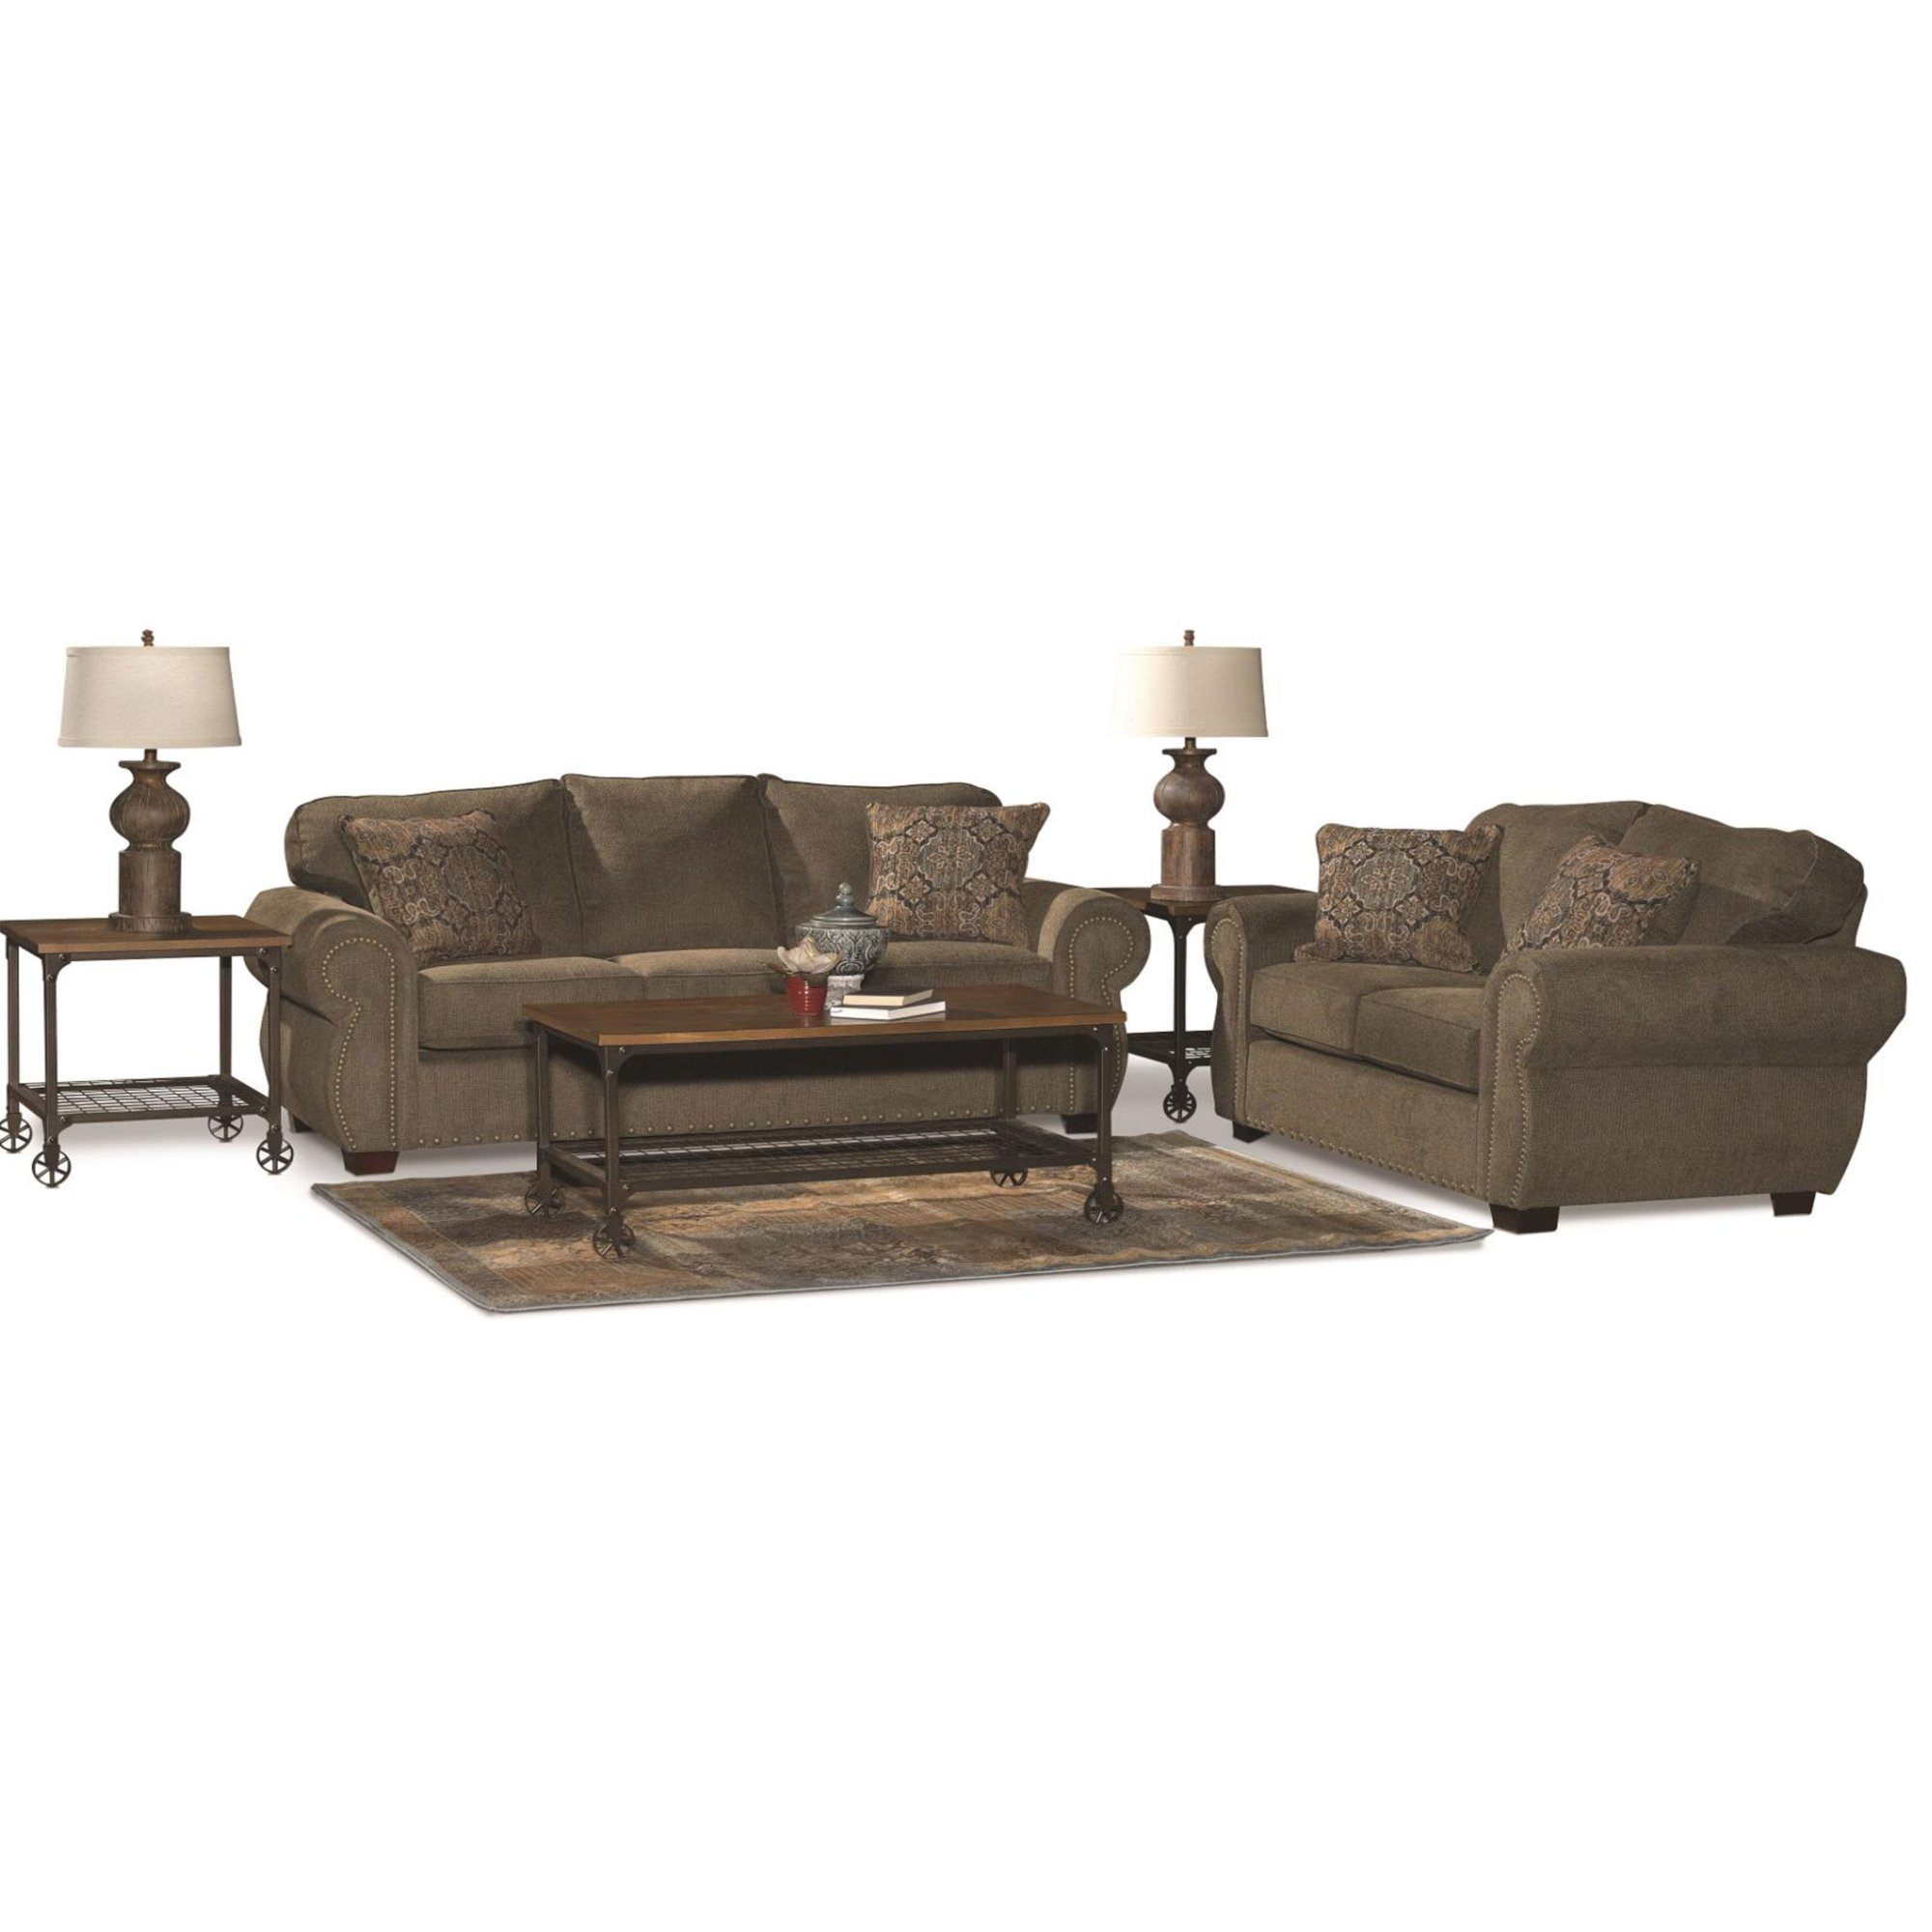 room and brown living couch loveseat piece collection slipcover